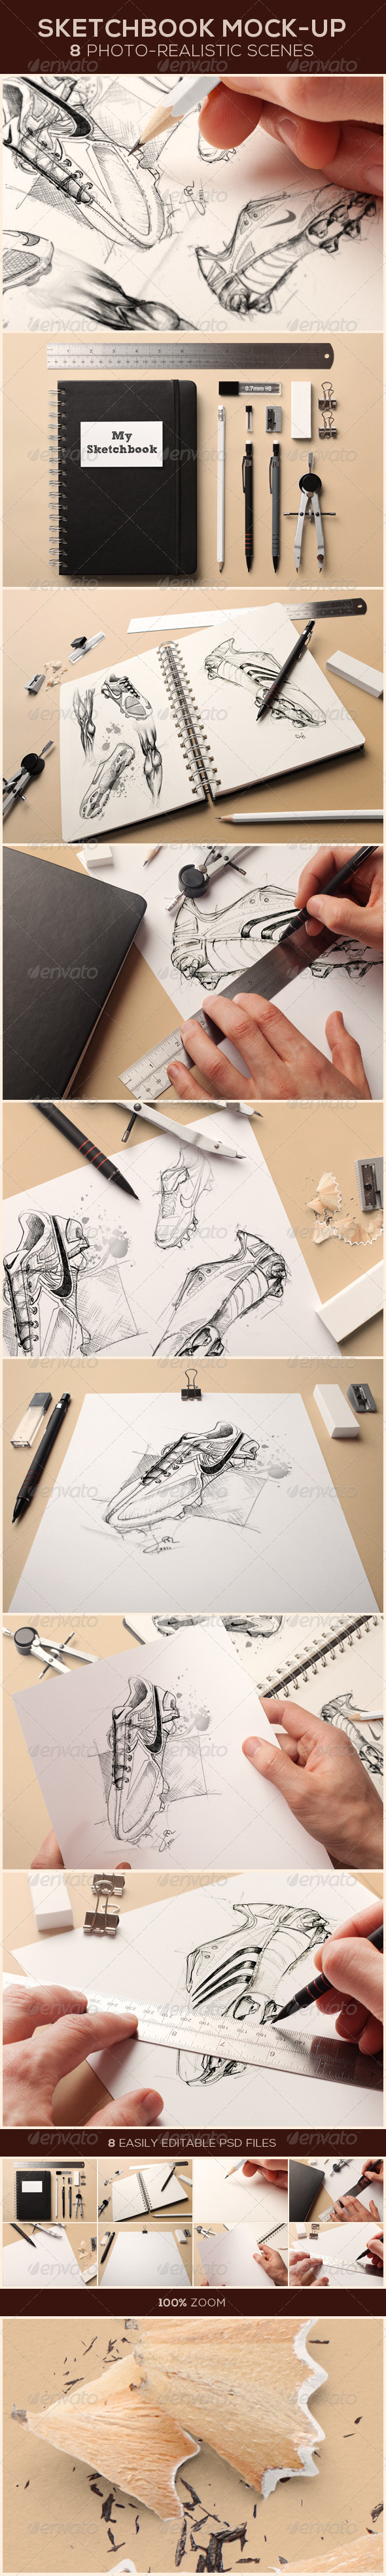 GraphicRiver Sketchbook Mock-up 8329154